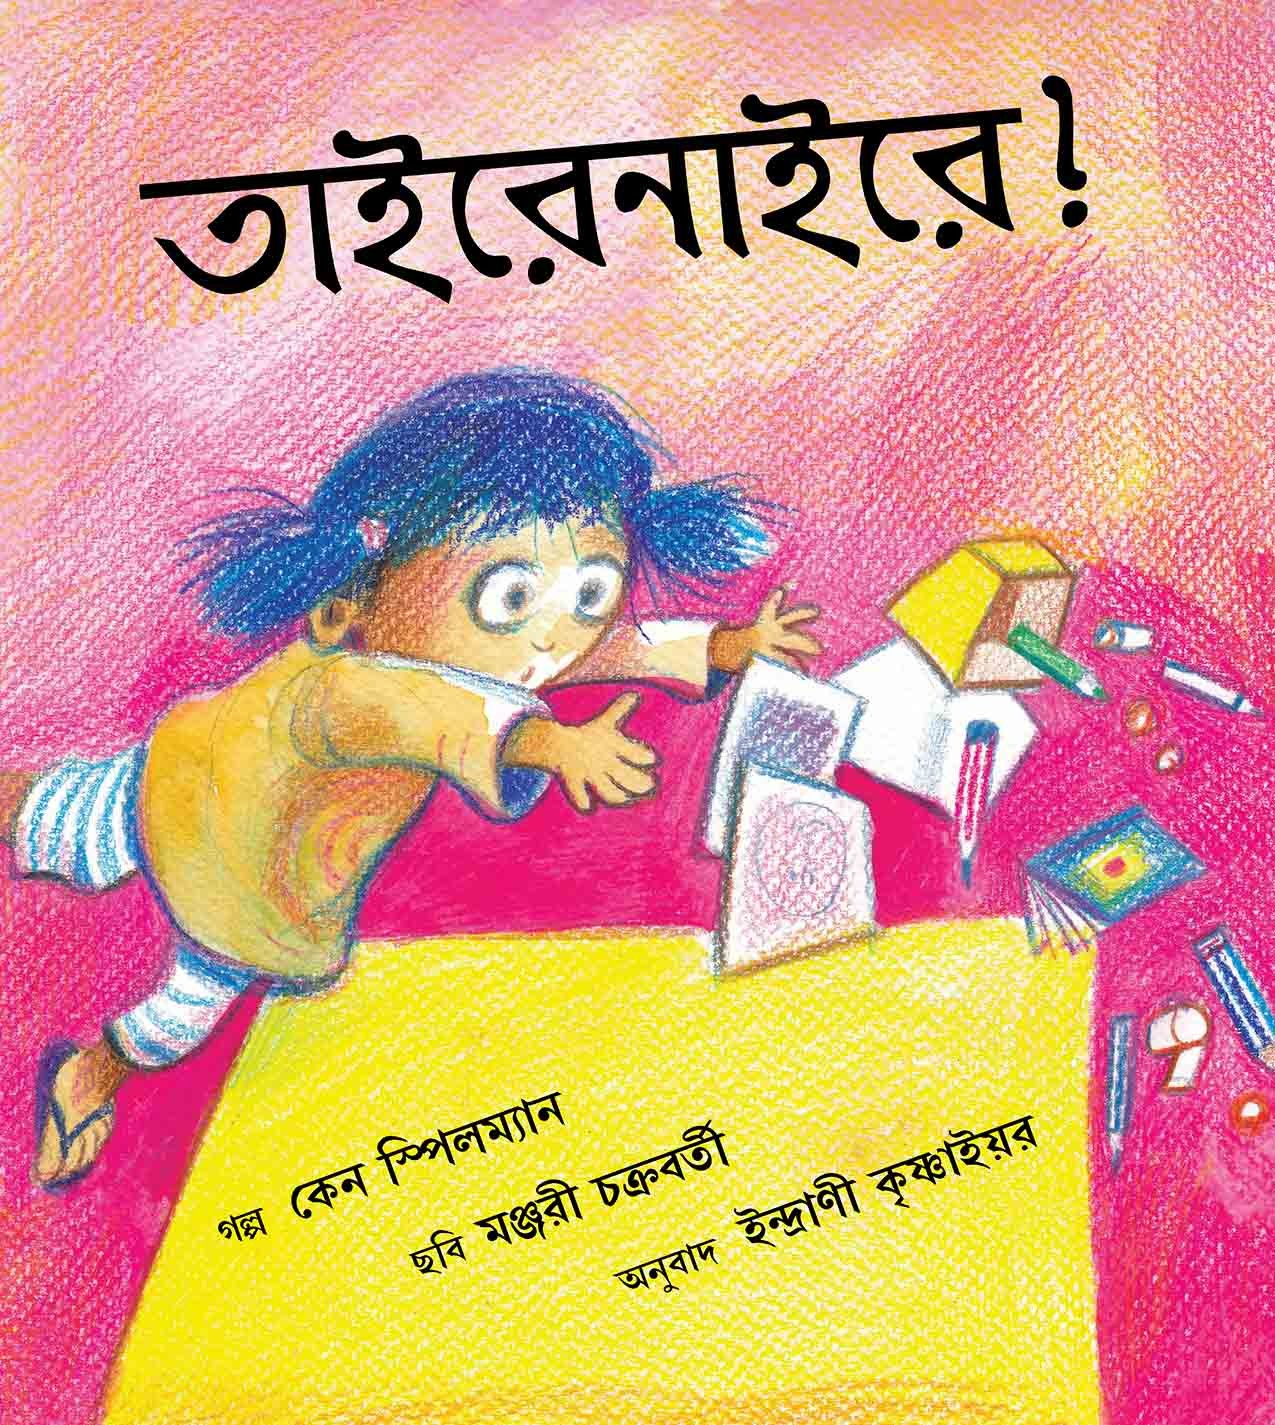 Clumsy!/Taireynairey! (Bengali)